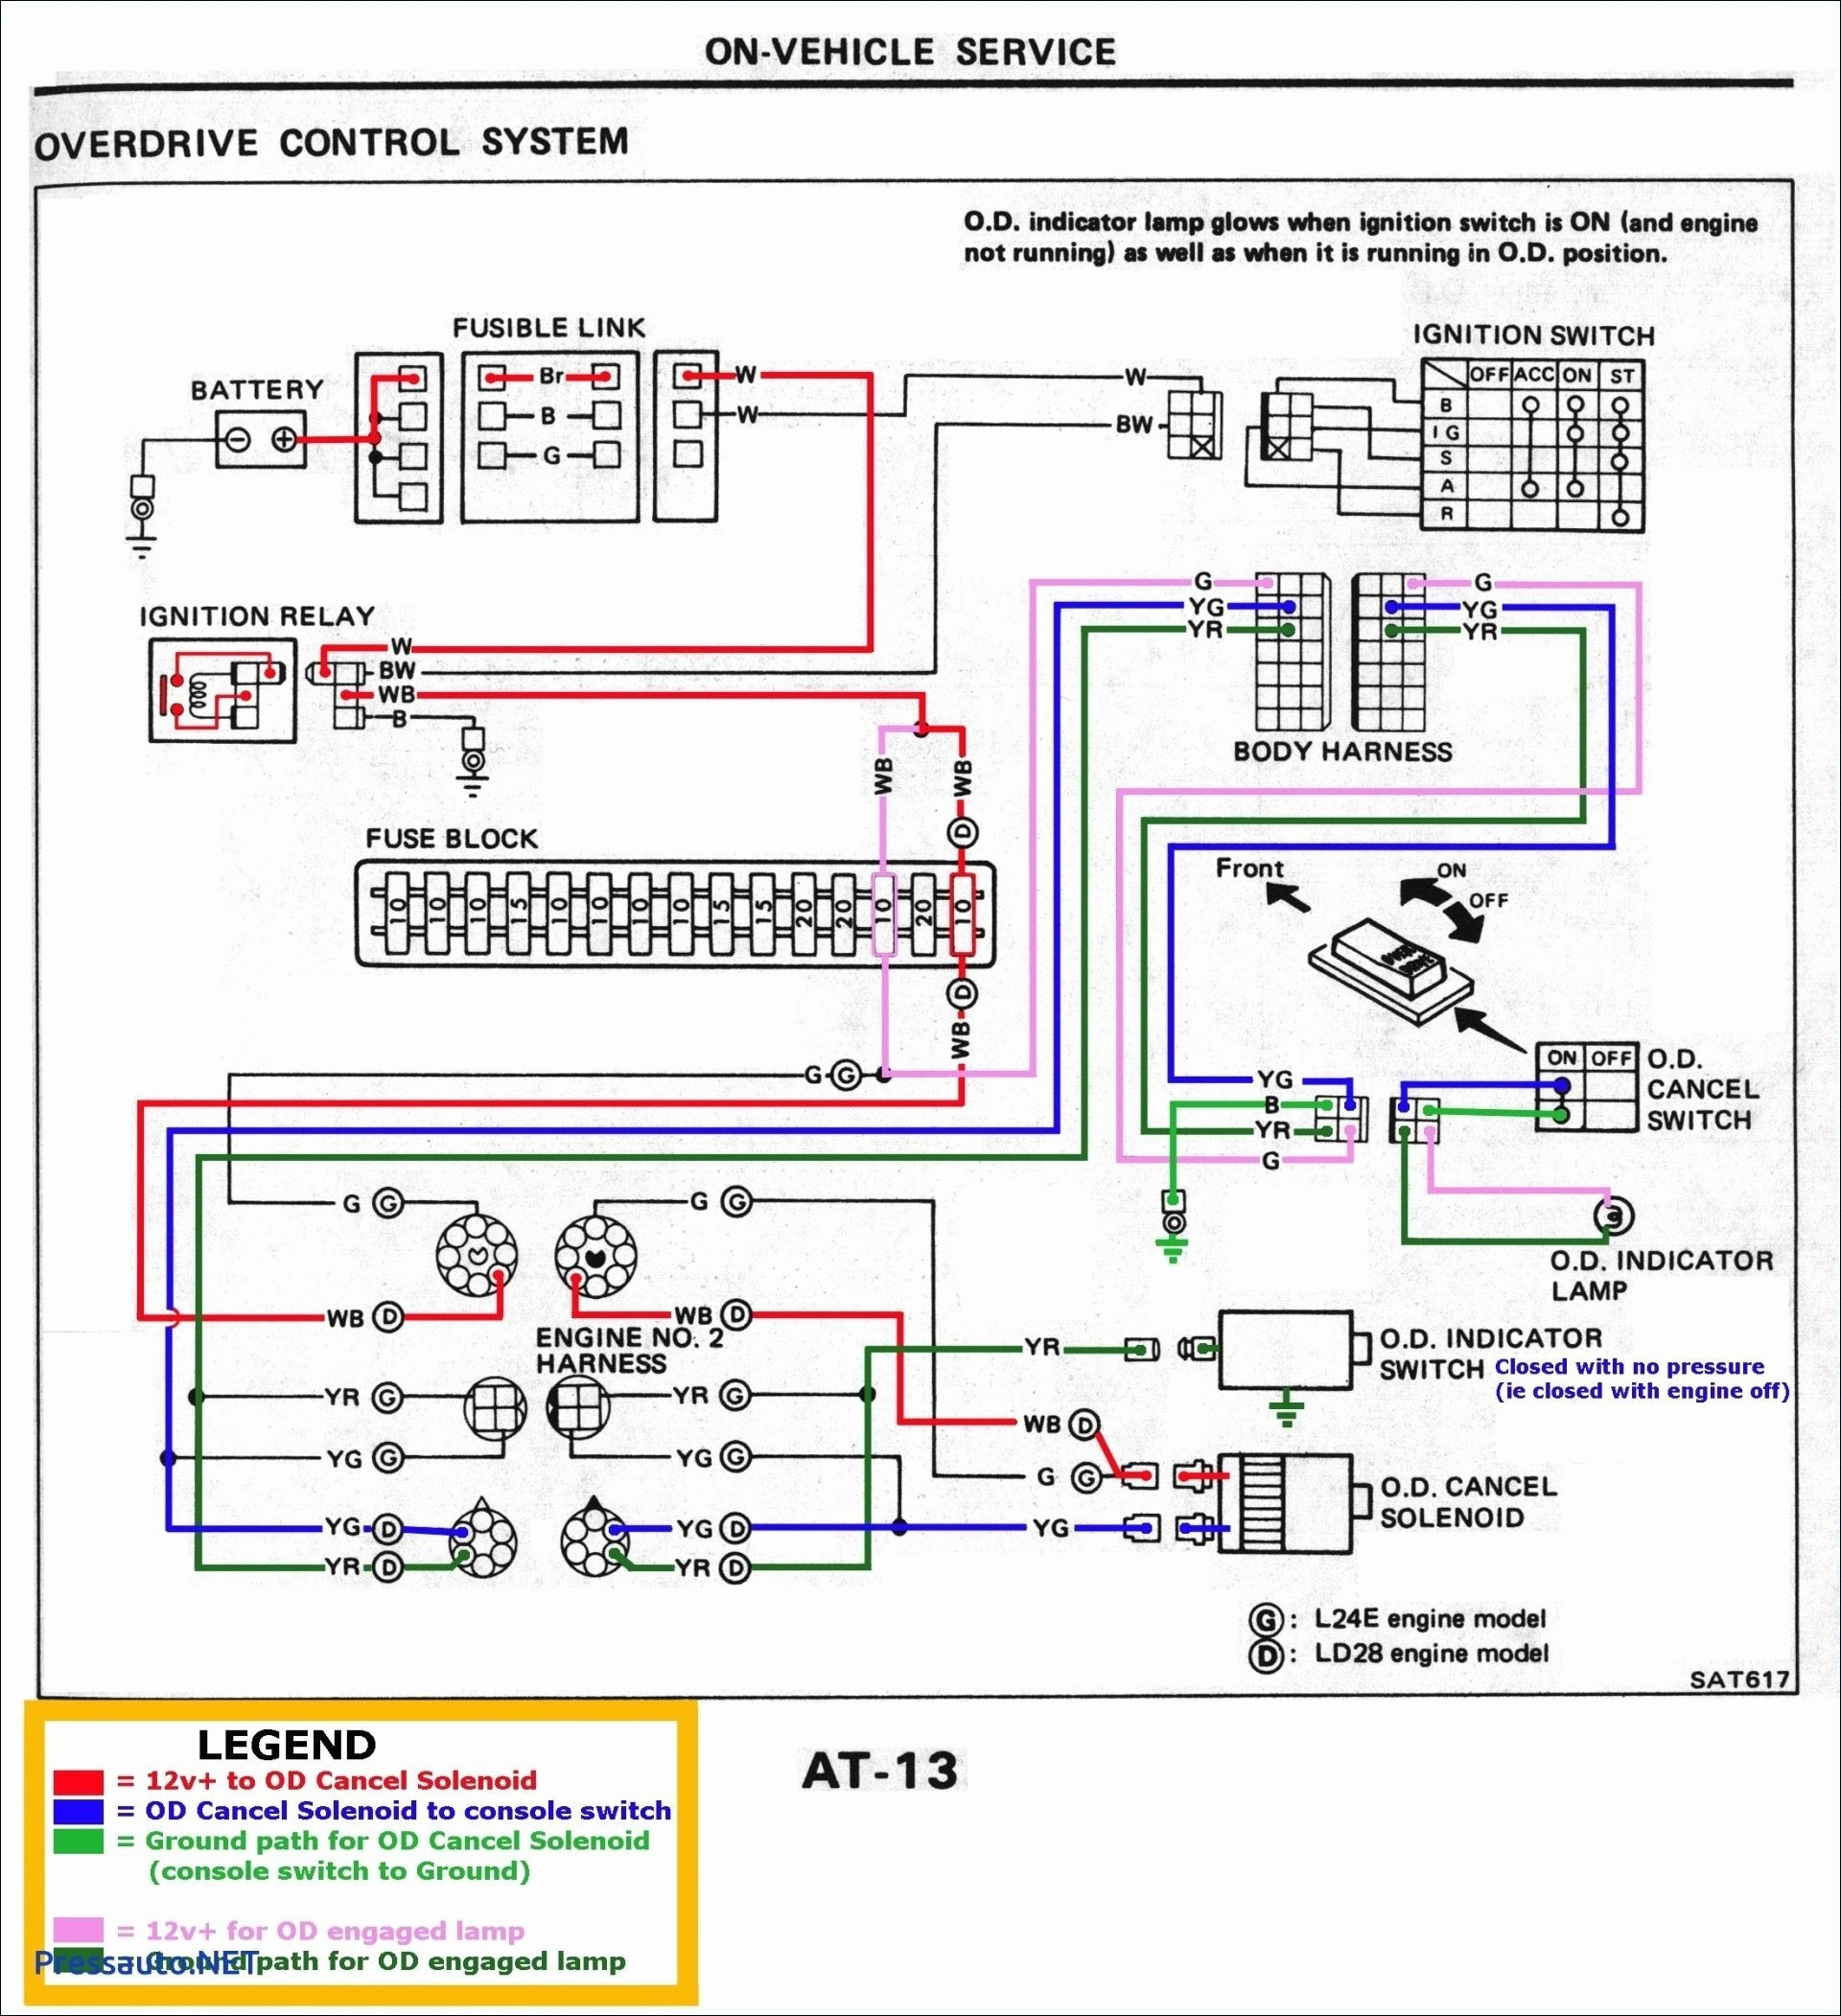 Interstate Trailer Wiring Diagram | Wiring Diagram - Gatormade Trailer Wiring Diagram